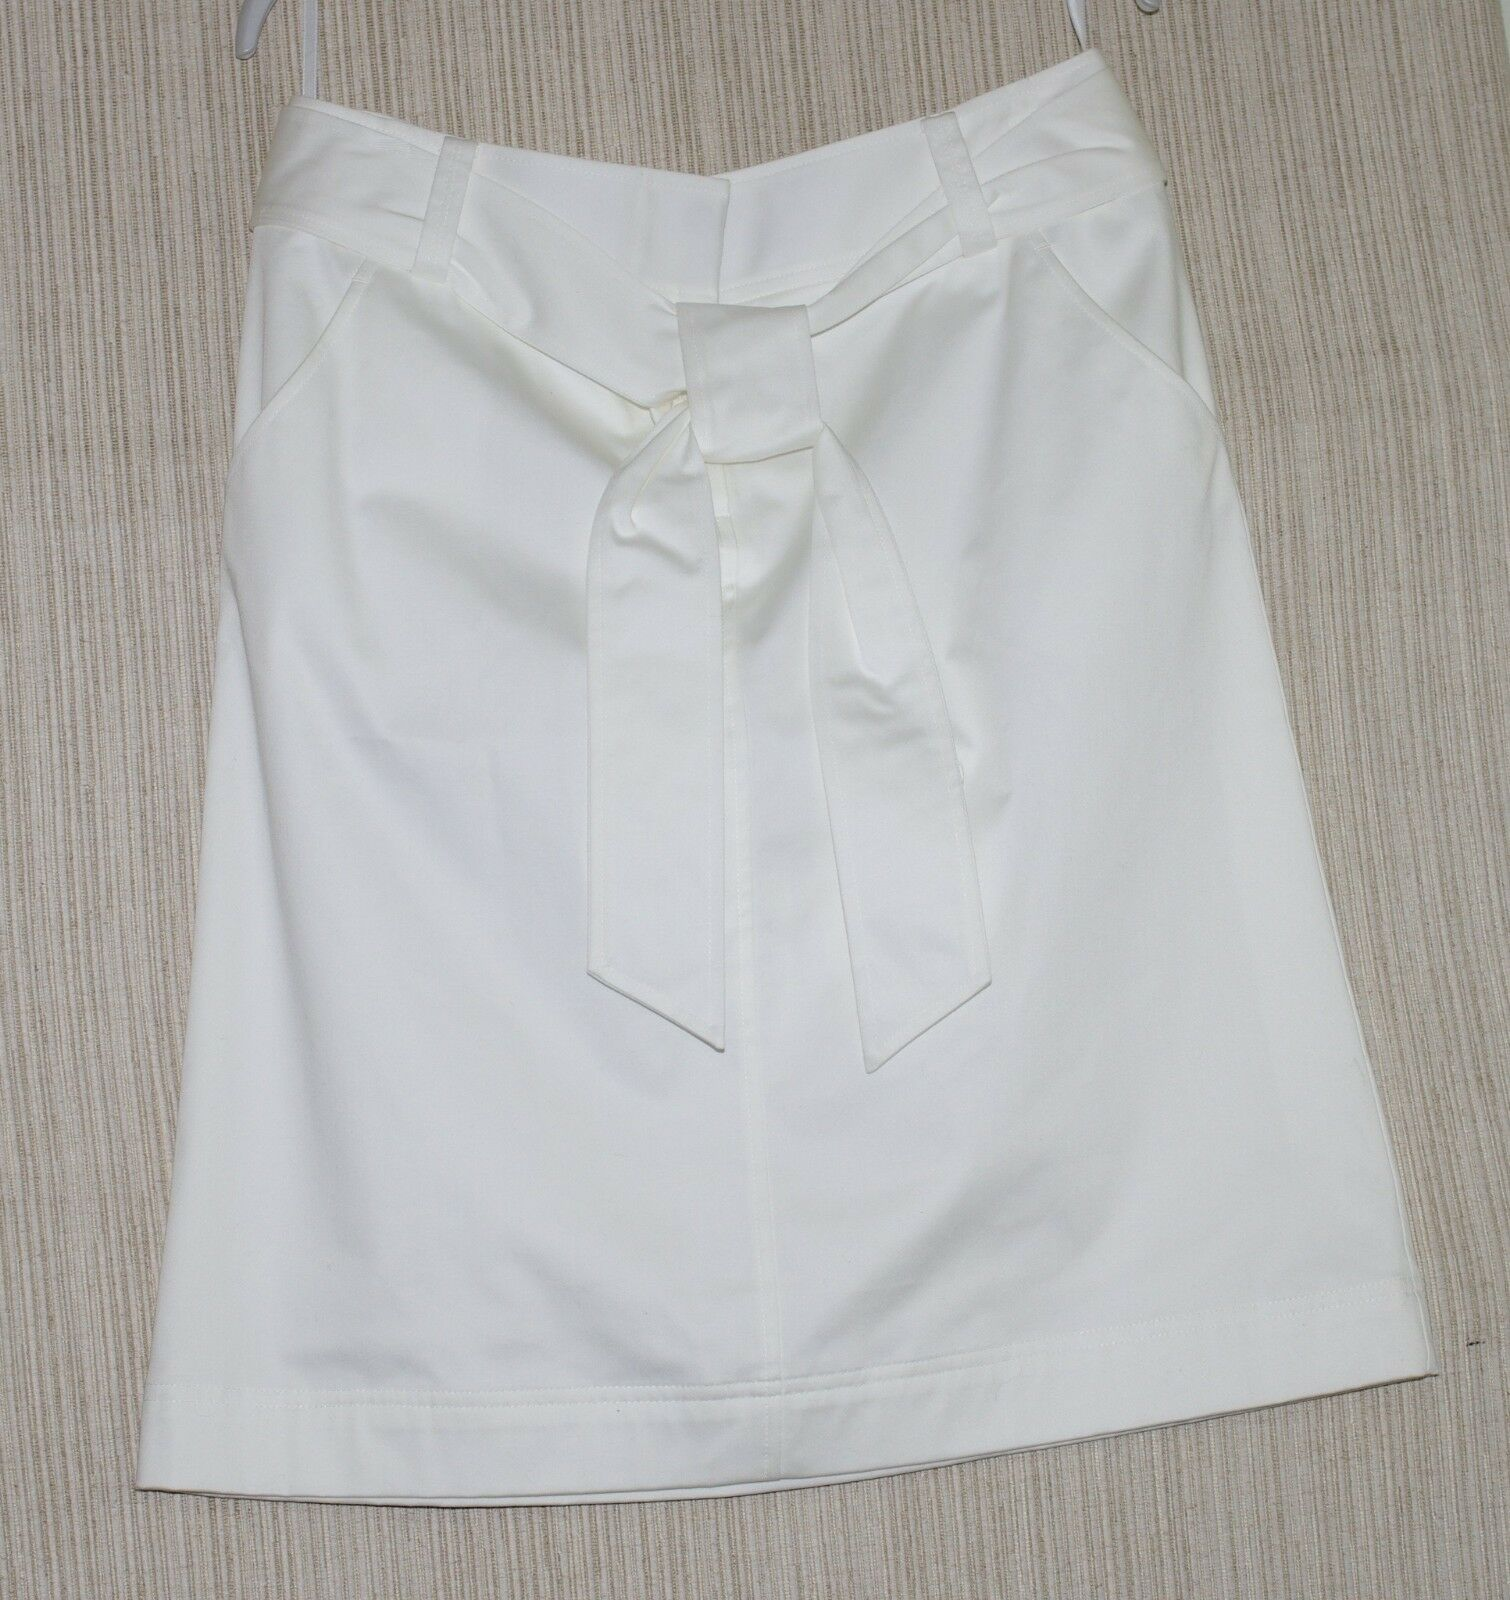 Lafayette 148 New York White  Cotton Blend Belted A Line Skirt Size  8